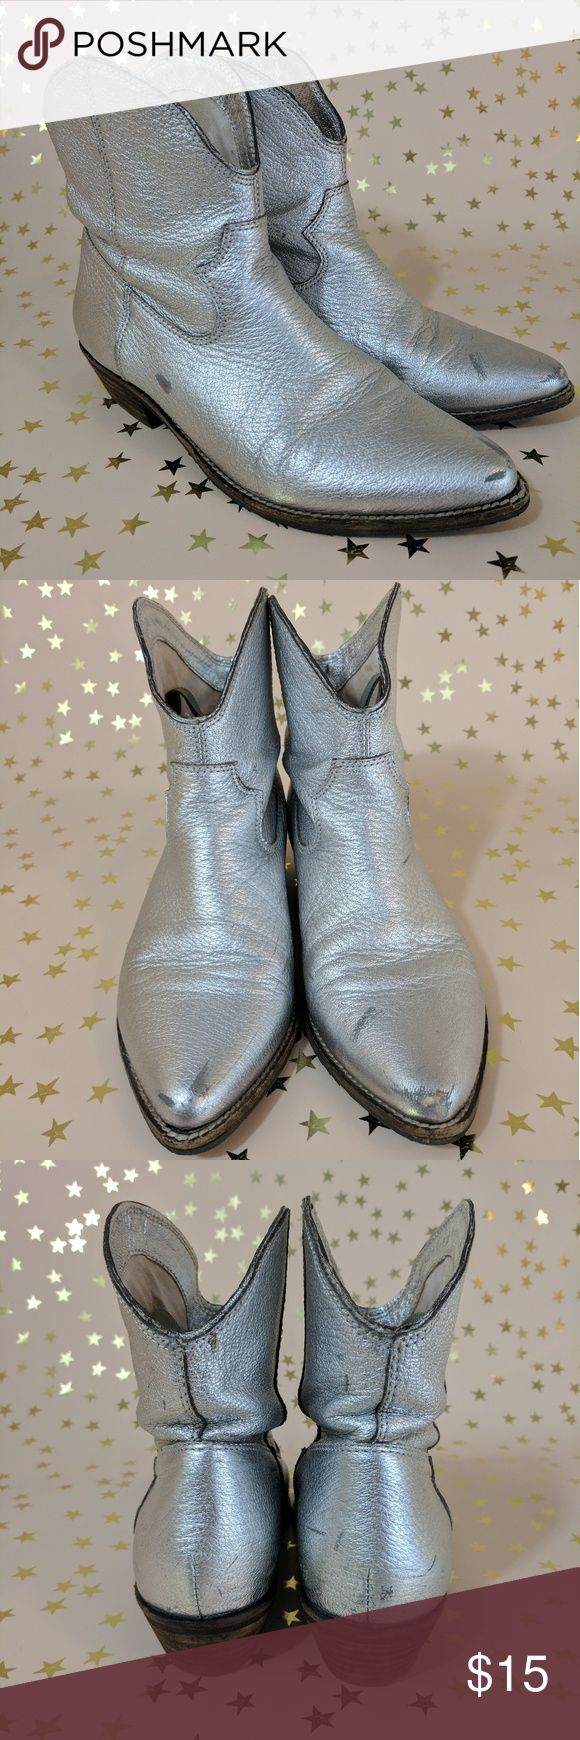 Silver Ankle Space Cowboy Boots A little scuffed up from all my Texas two steppin' and contra dancing up in the stars 🌟🌛🌞😎 Nicole Shoes Ankle Boots & Booties